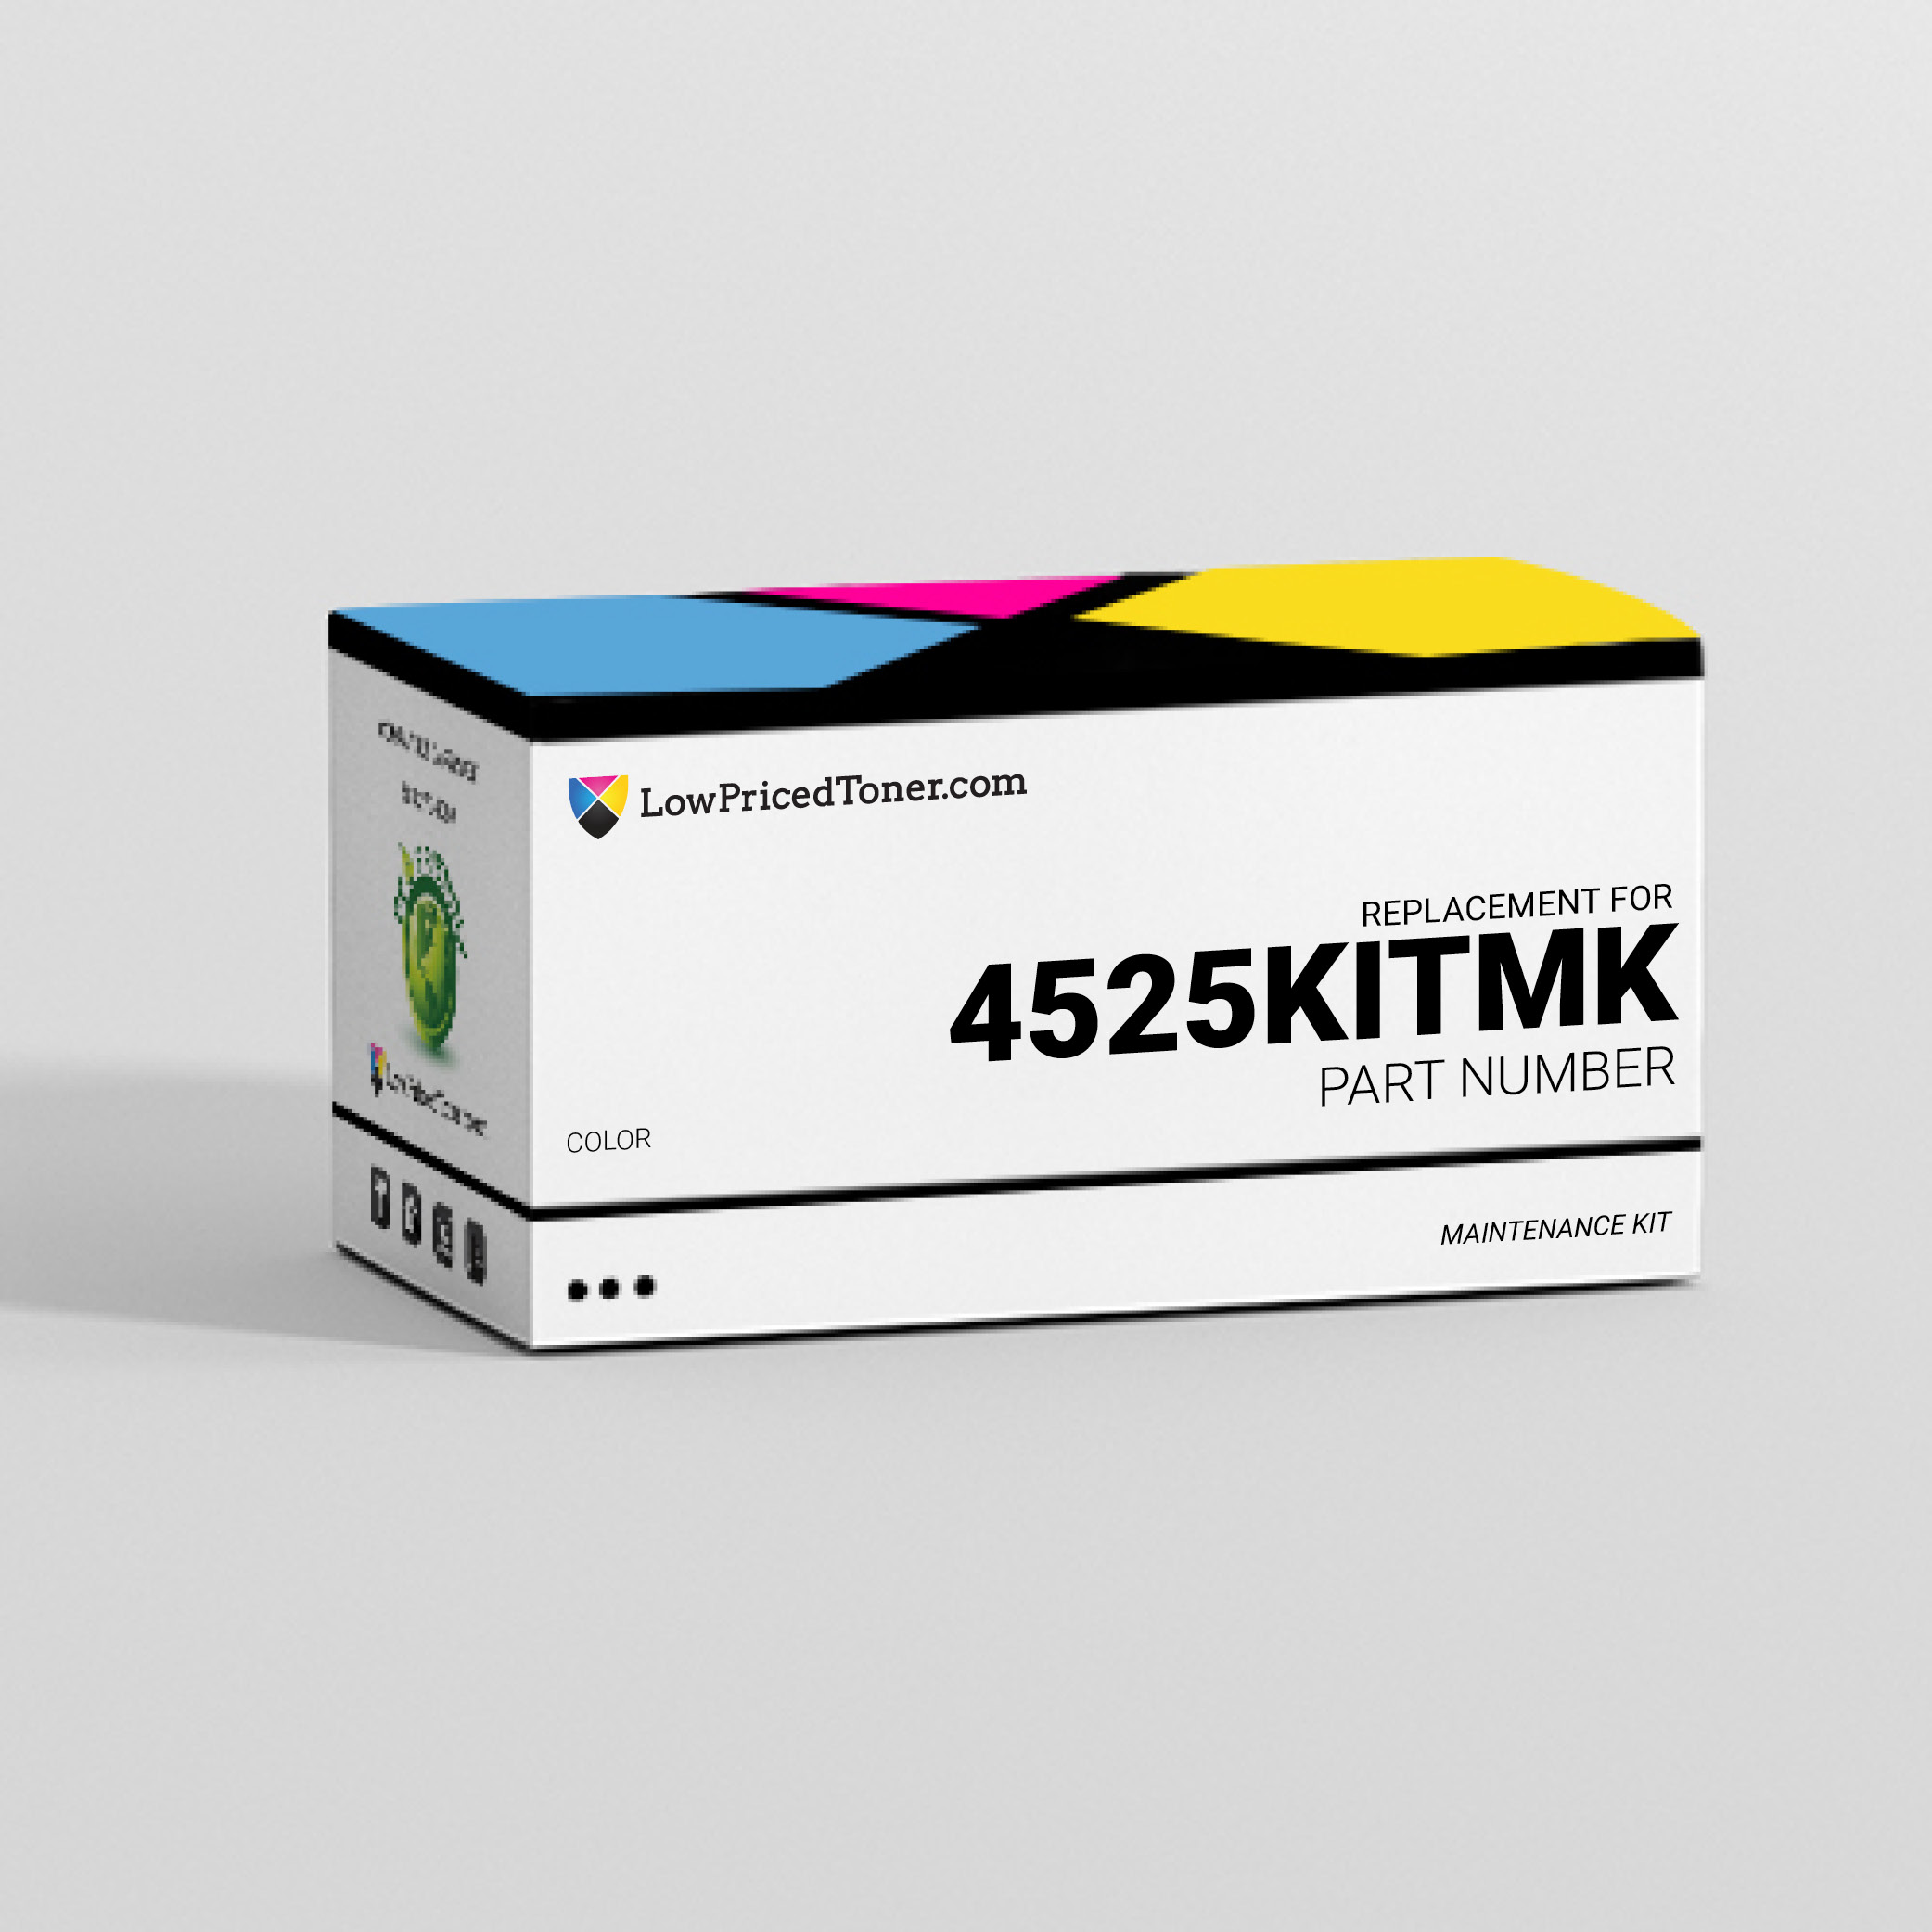 HP 4525KITMK Remanufactured Color Maintenance Kit